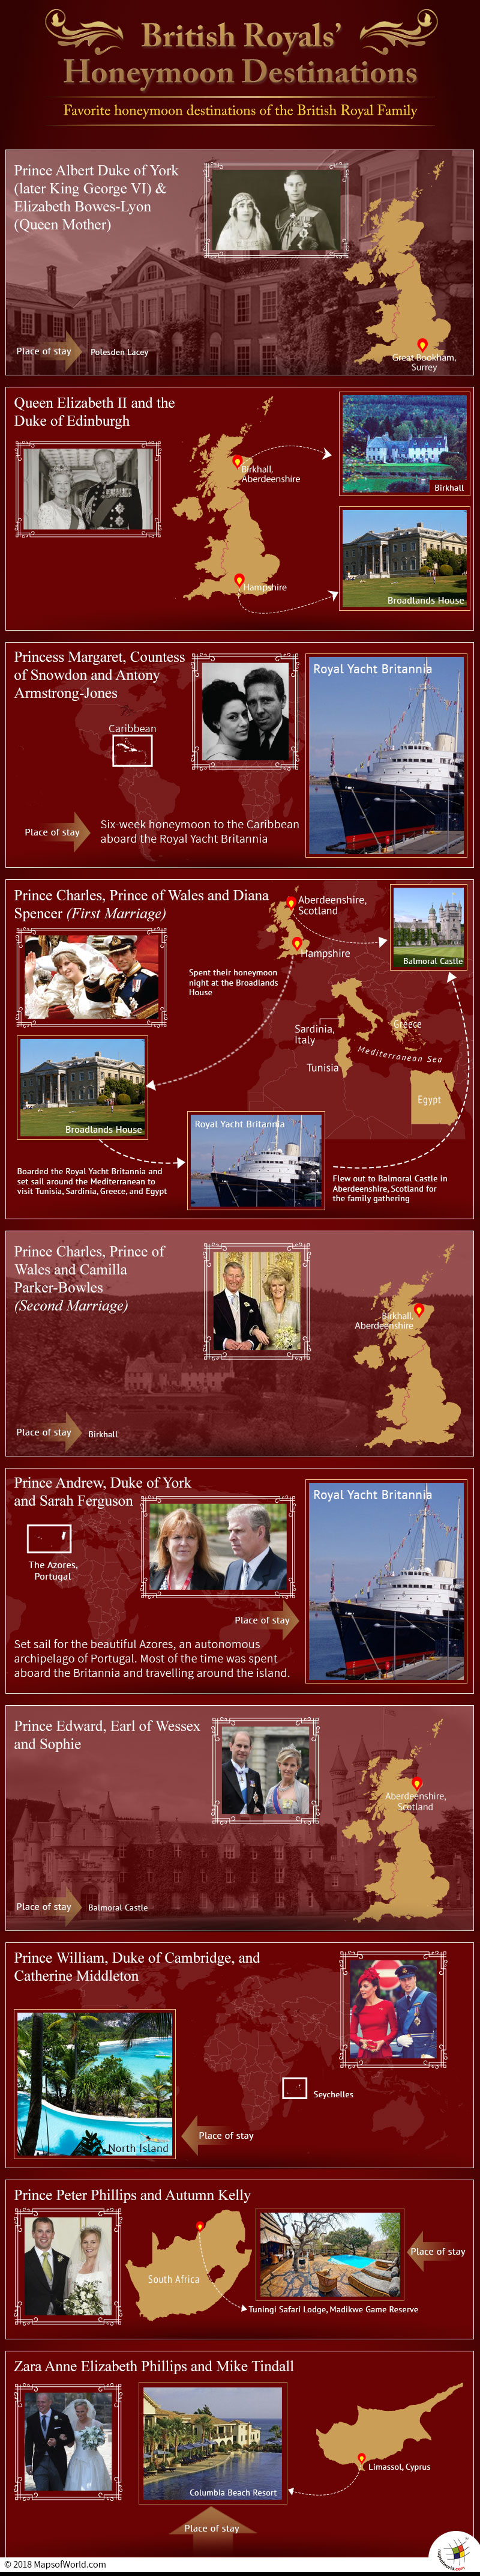 Infographic and map on Honeymoon Destinations of British Royals